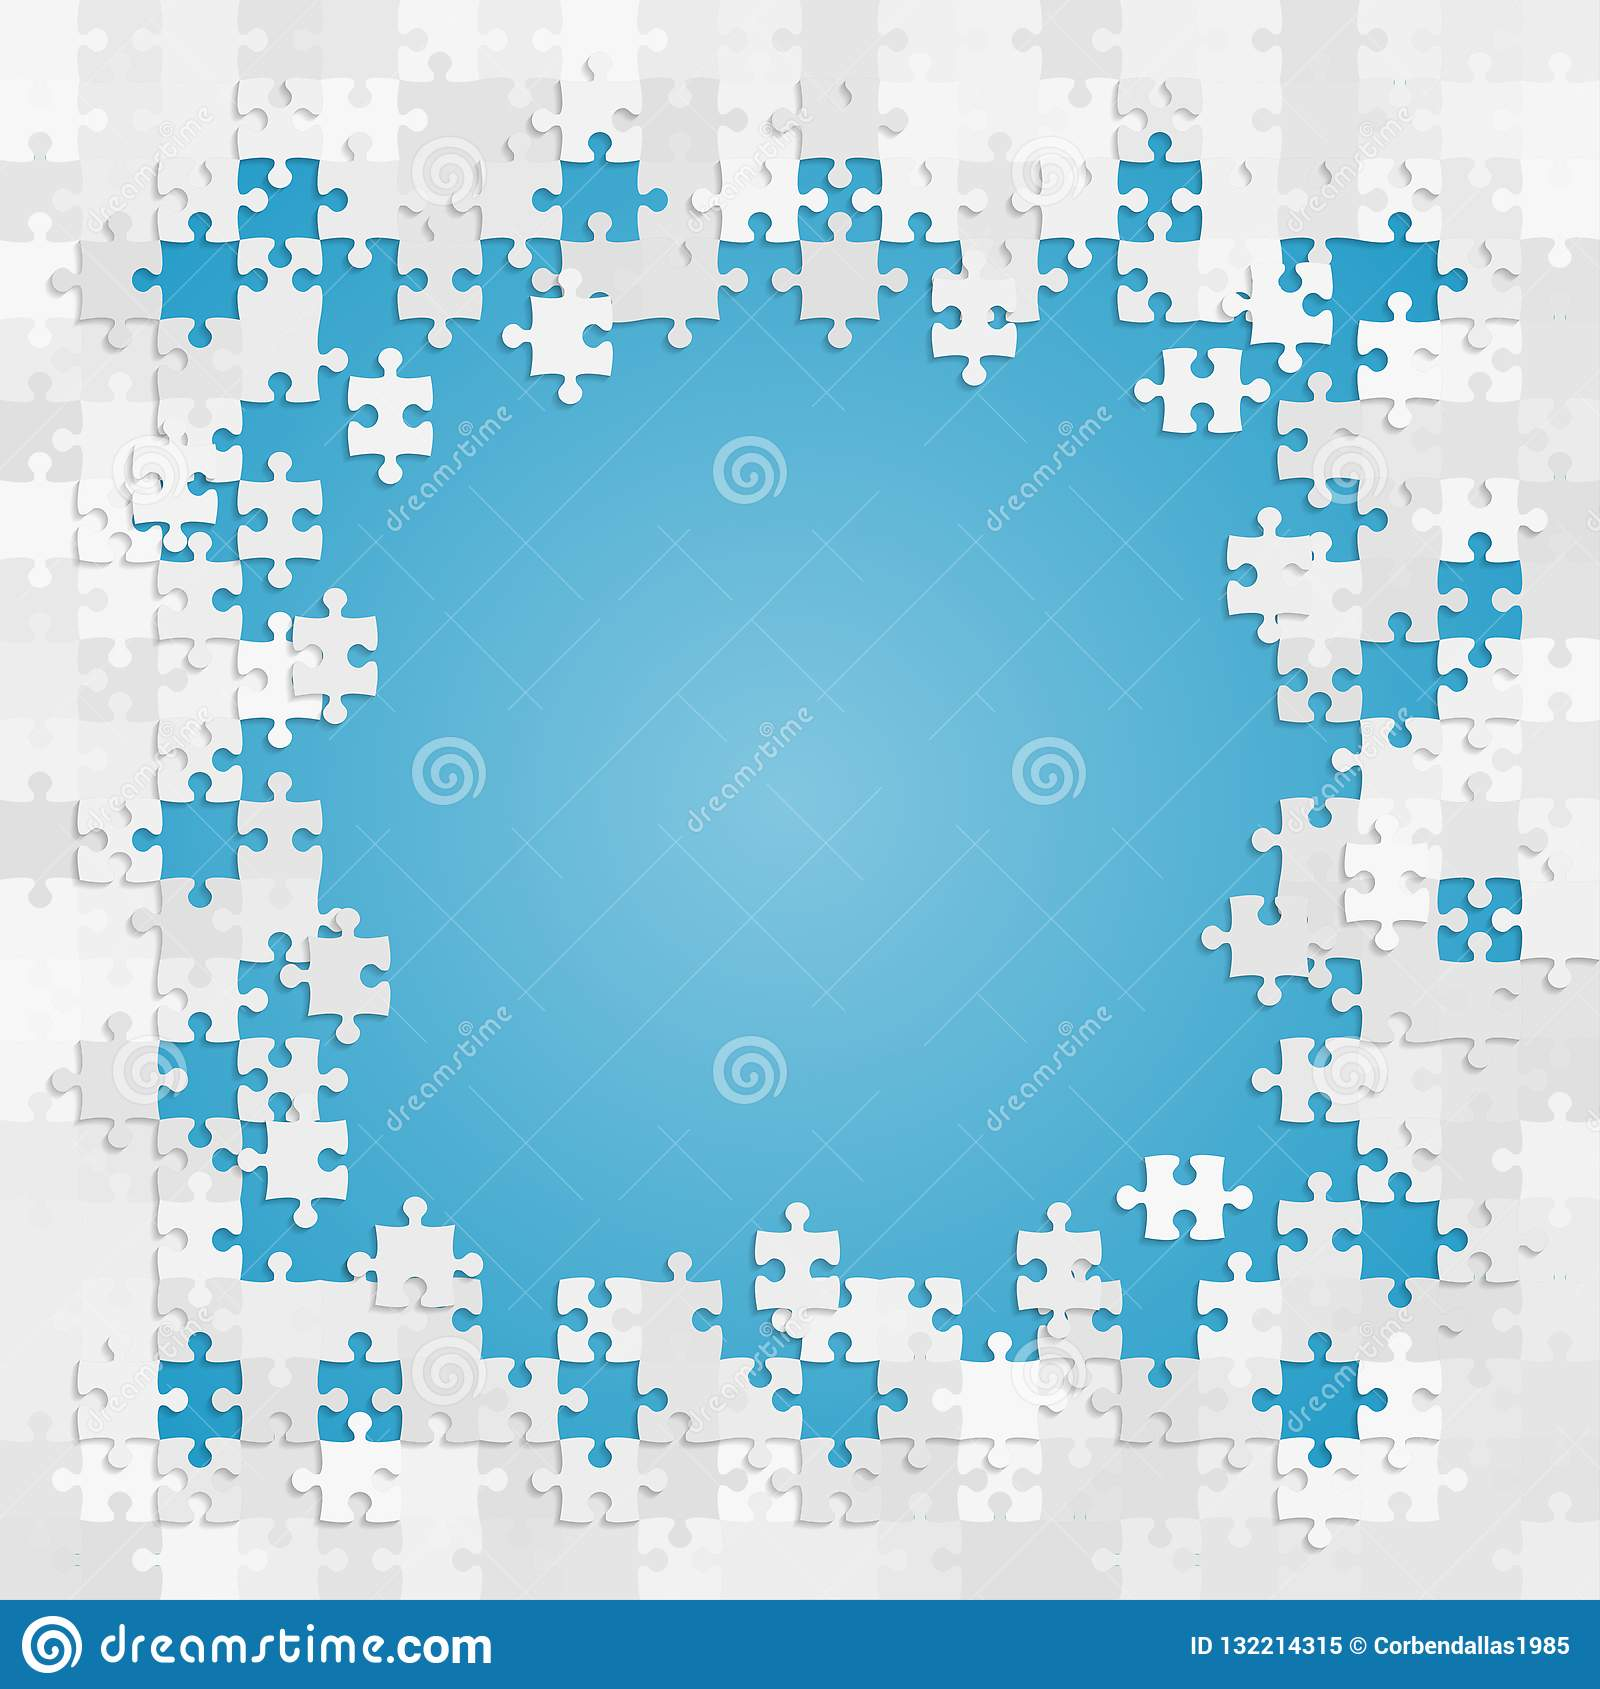 The Blue Puzzle Frame  Puzzle Pieces Banner   Stock Vector